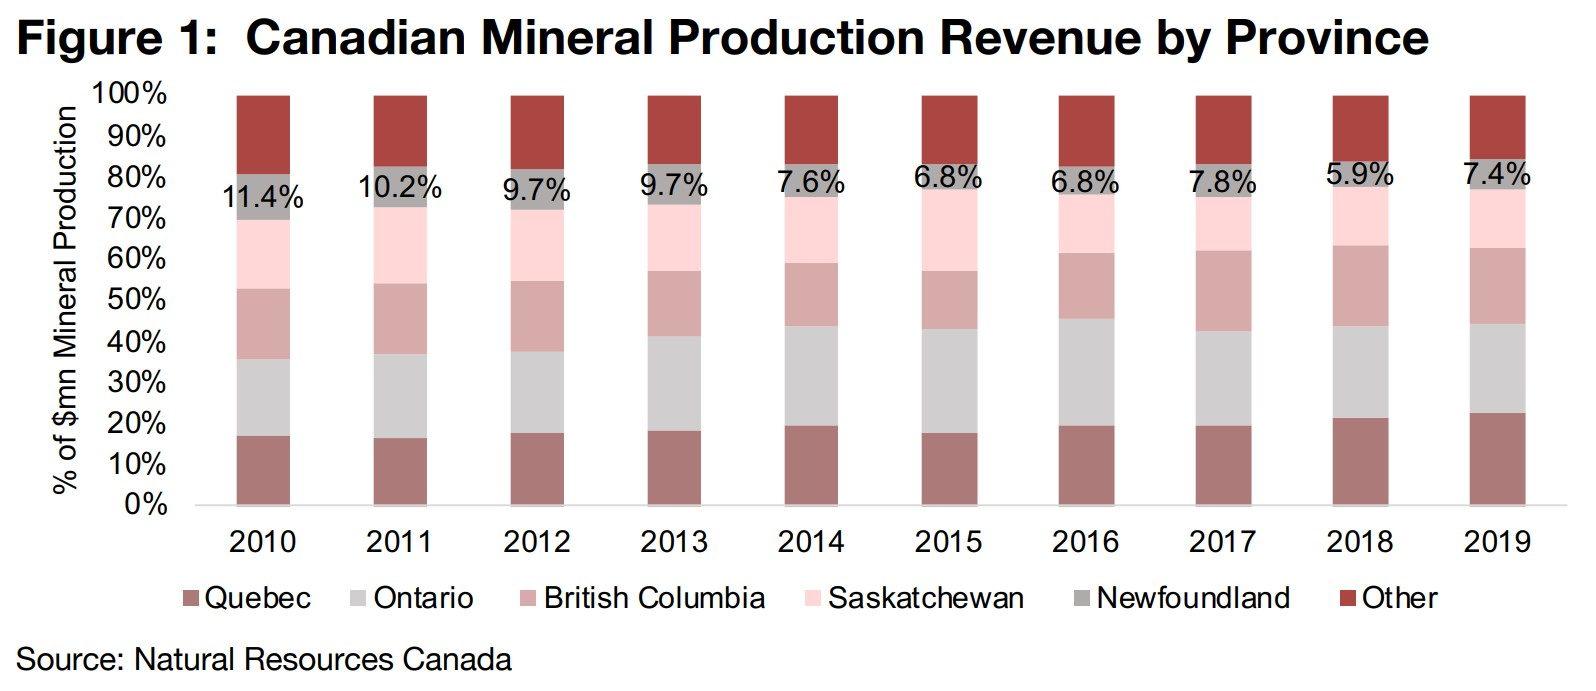 1) Newfoundland Mineral Industry